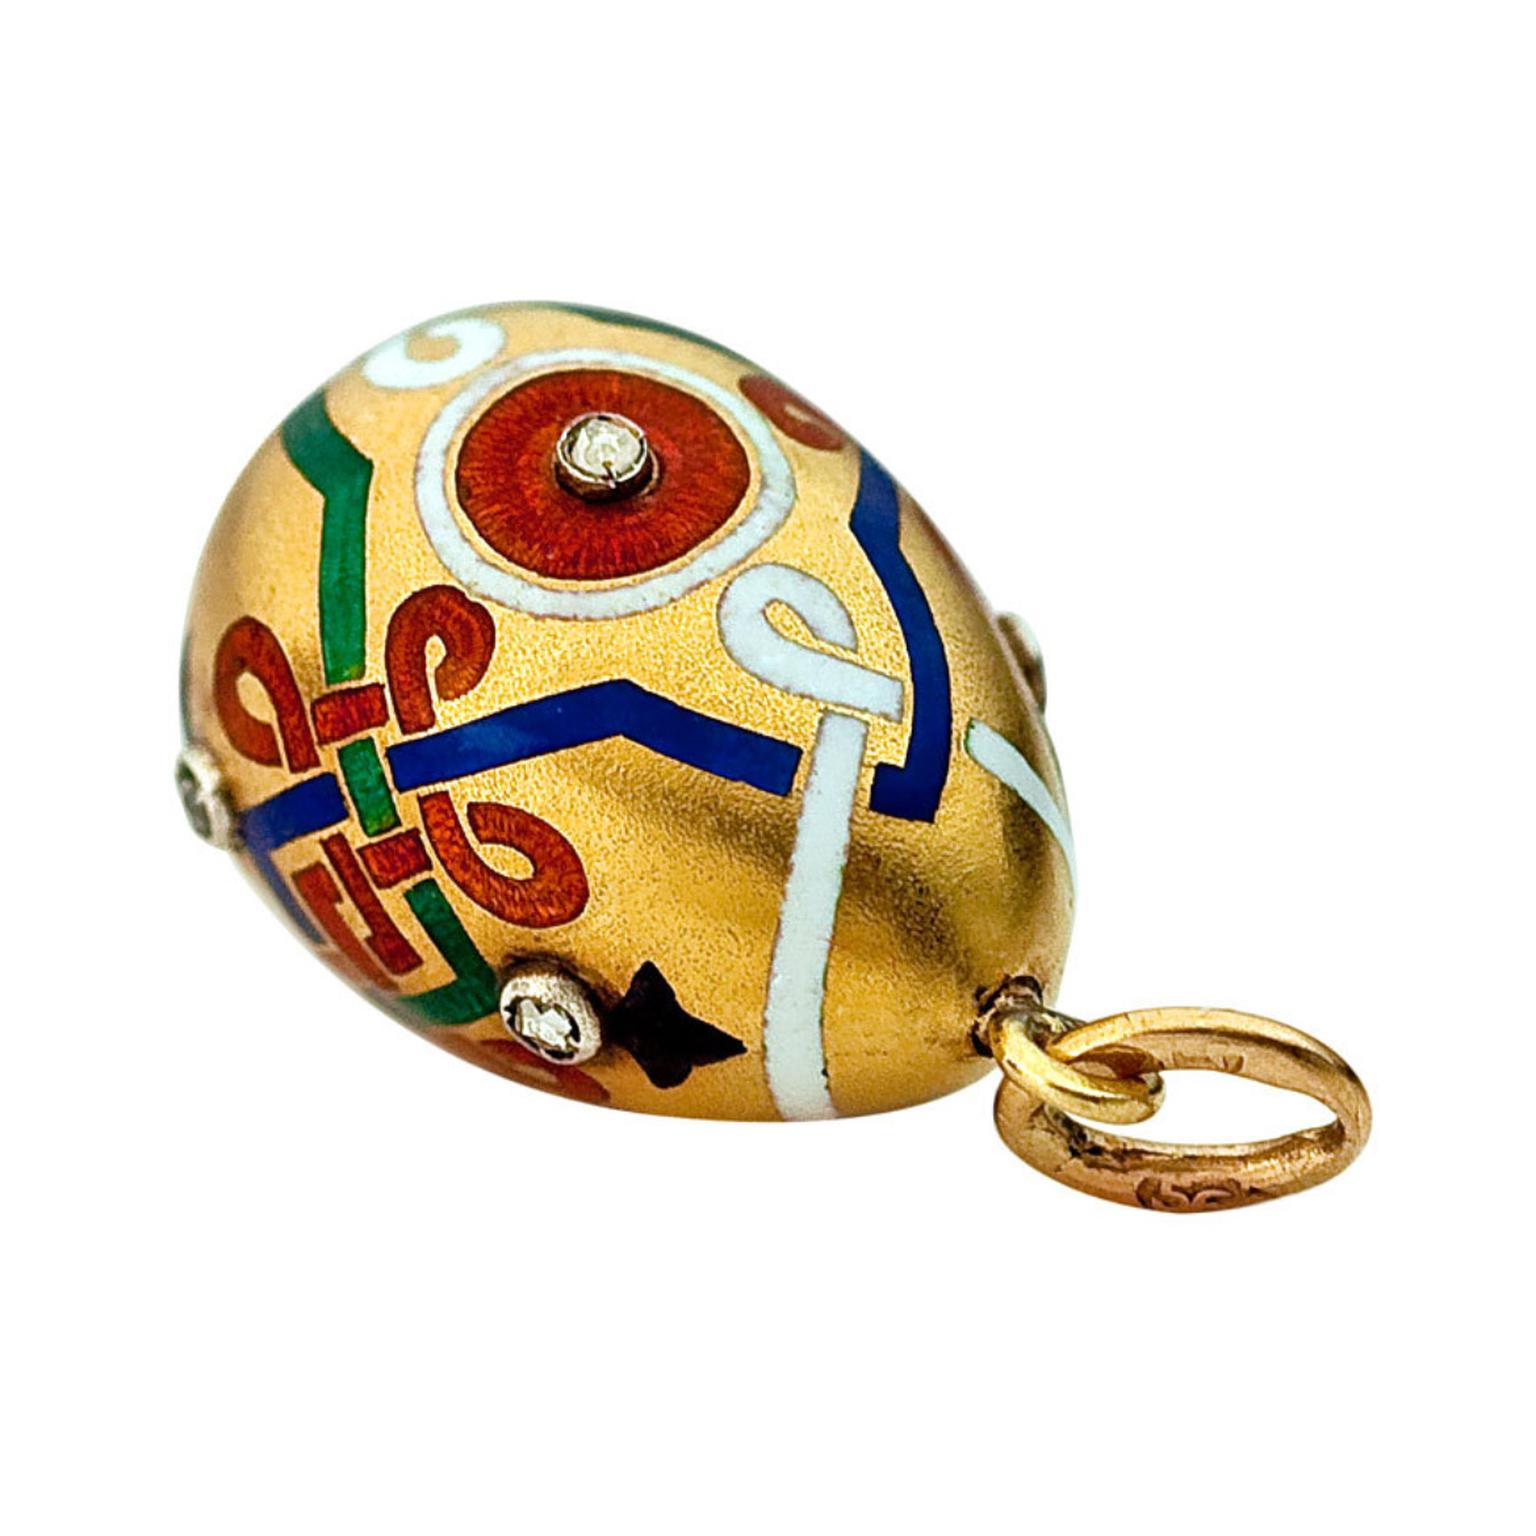 1stdibs Faberge Russian Revival egg charm